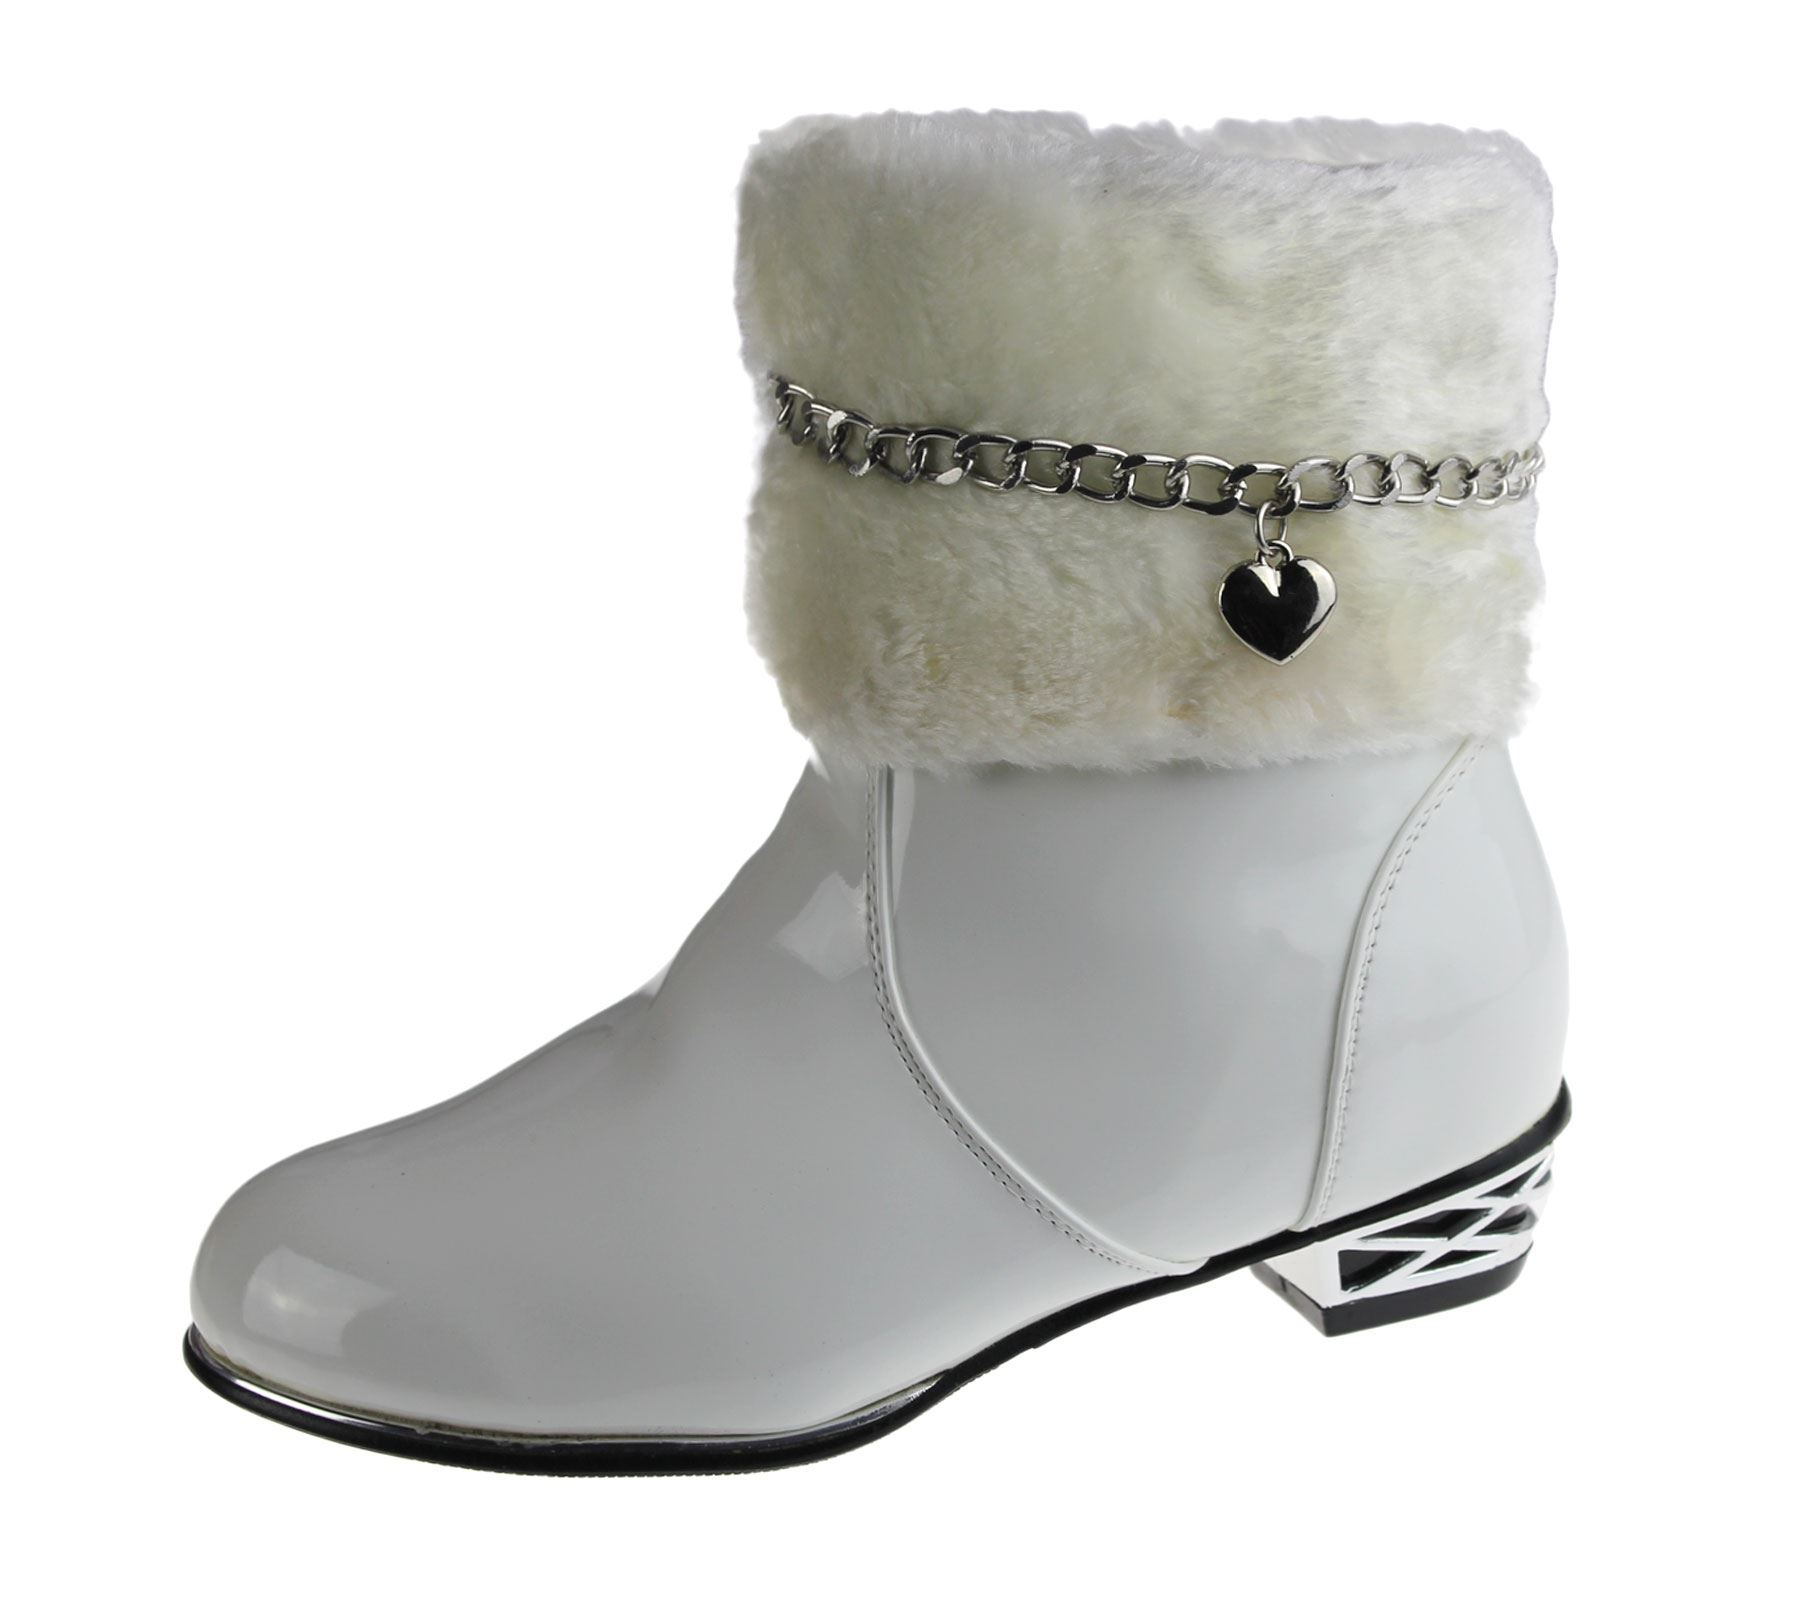 Girls Skechers Boots Sale. Checkout our kids Skechers sale for top-quality girls suede fur boots. Skechers children's fur boots are priced to sell and come in a variety of pretty colors - .